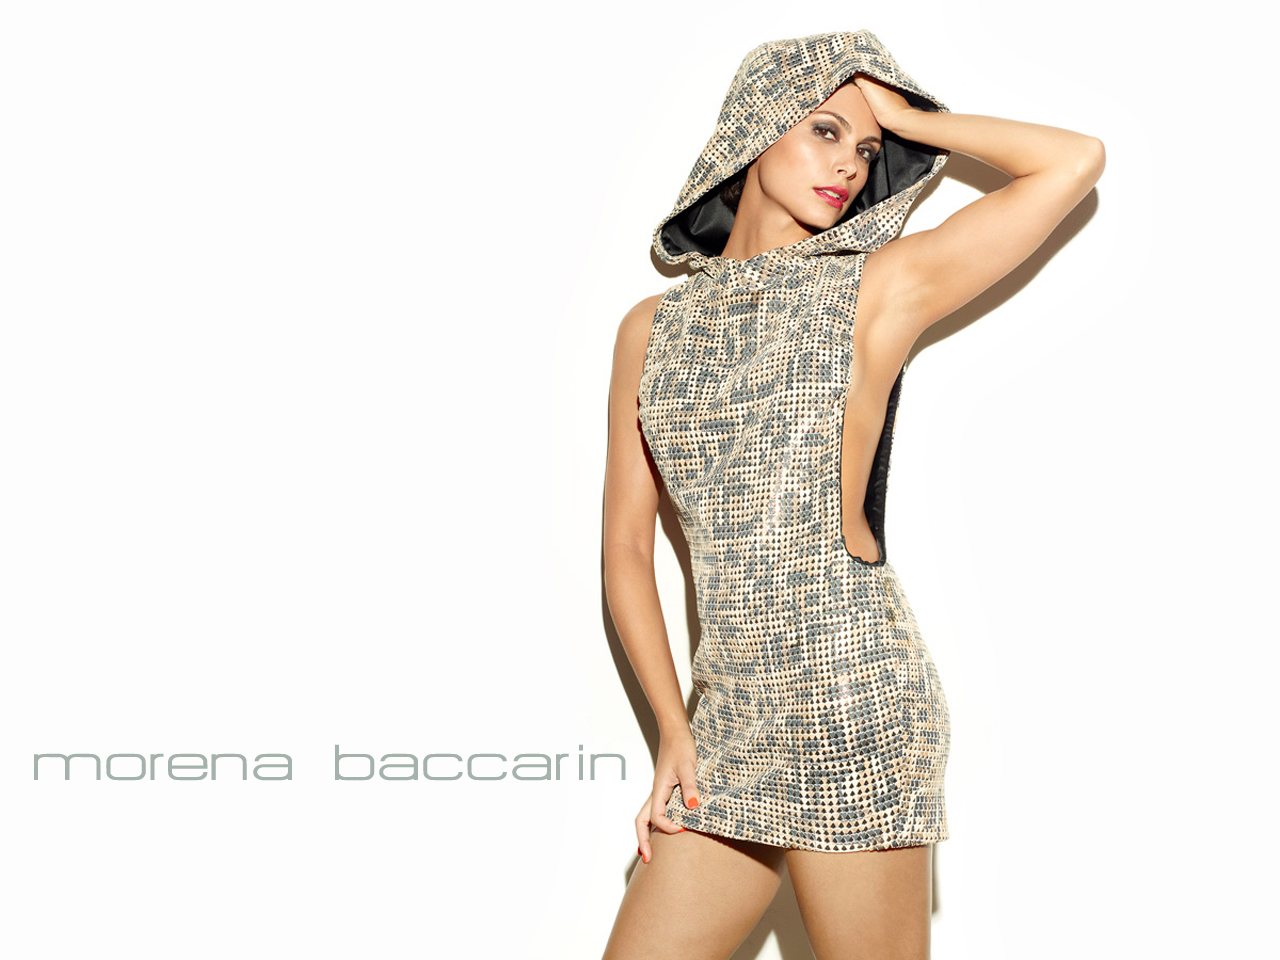 Good Morena Baccarin Wallpaper | Full HD Pictures: fullhdpictures.com/morena-baccarin-hq-wallpapers.html/good-morena...